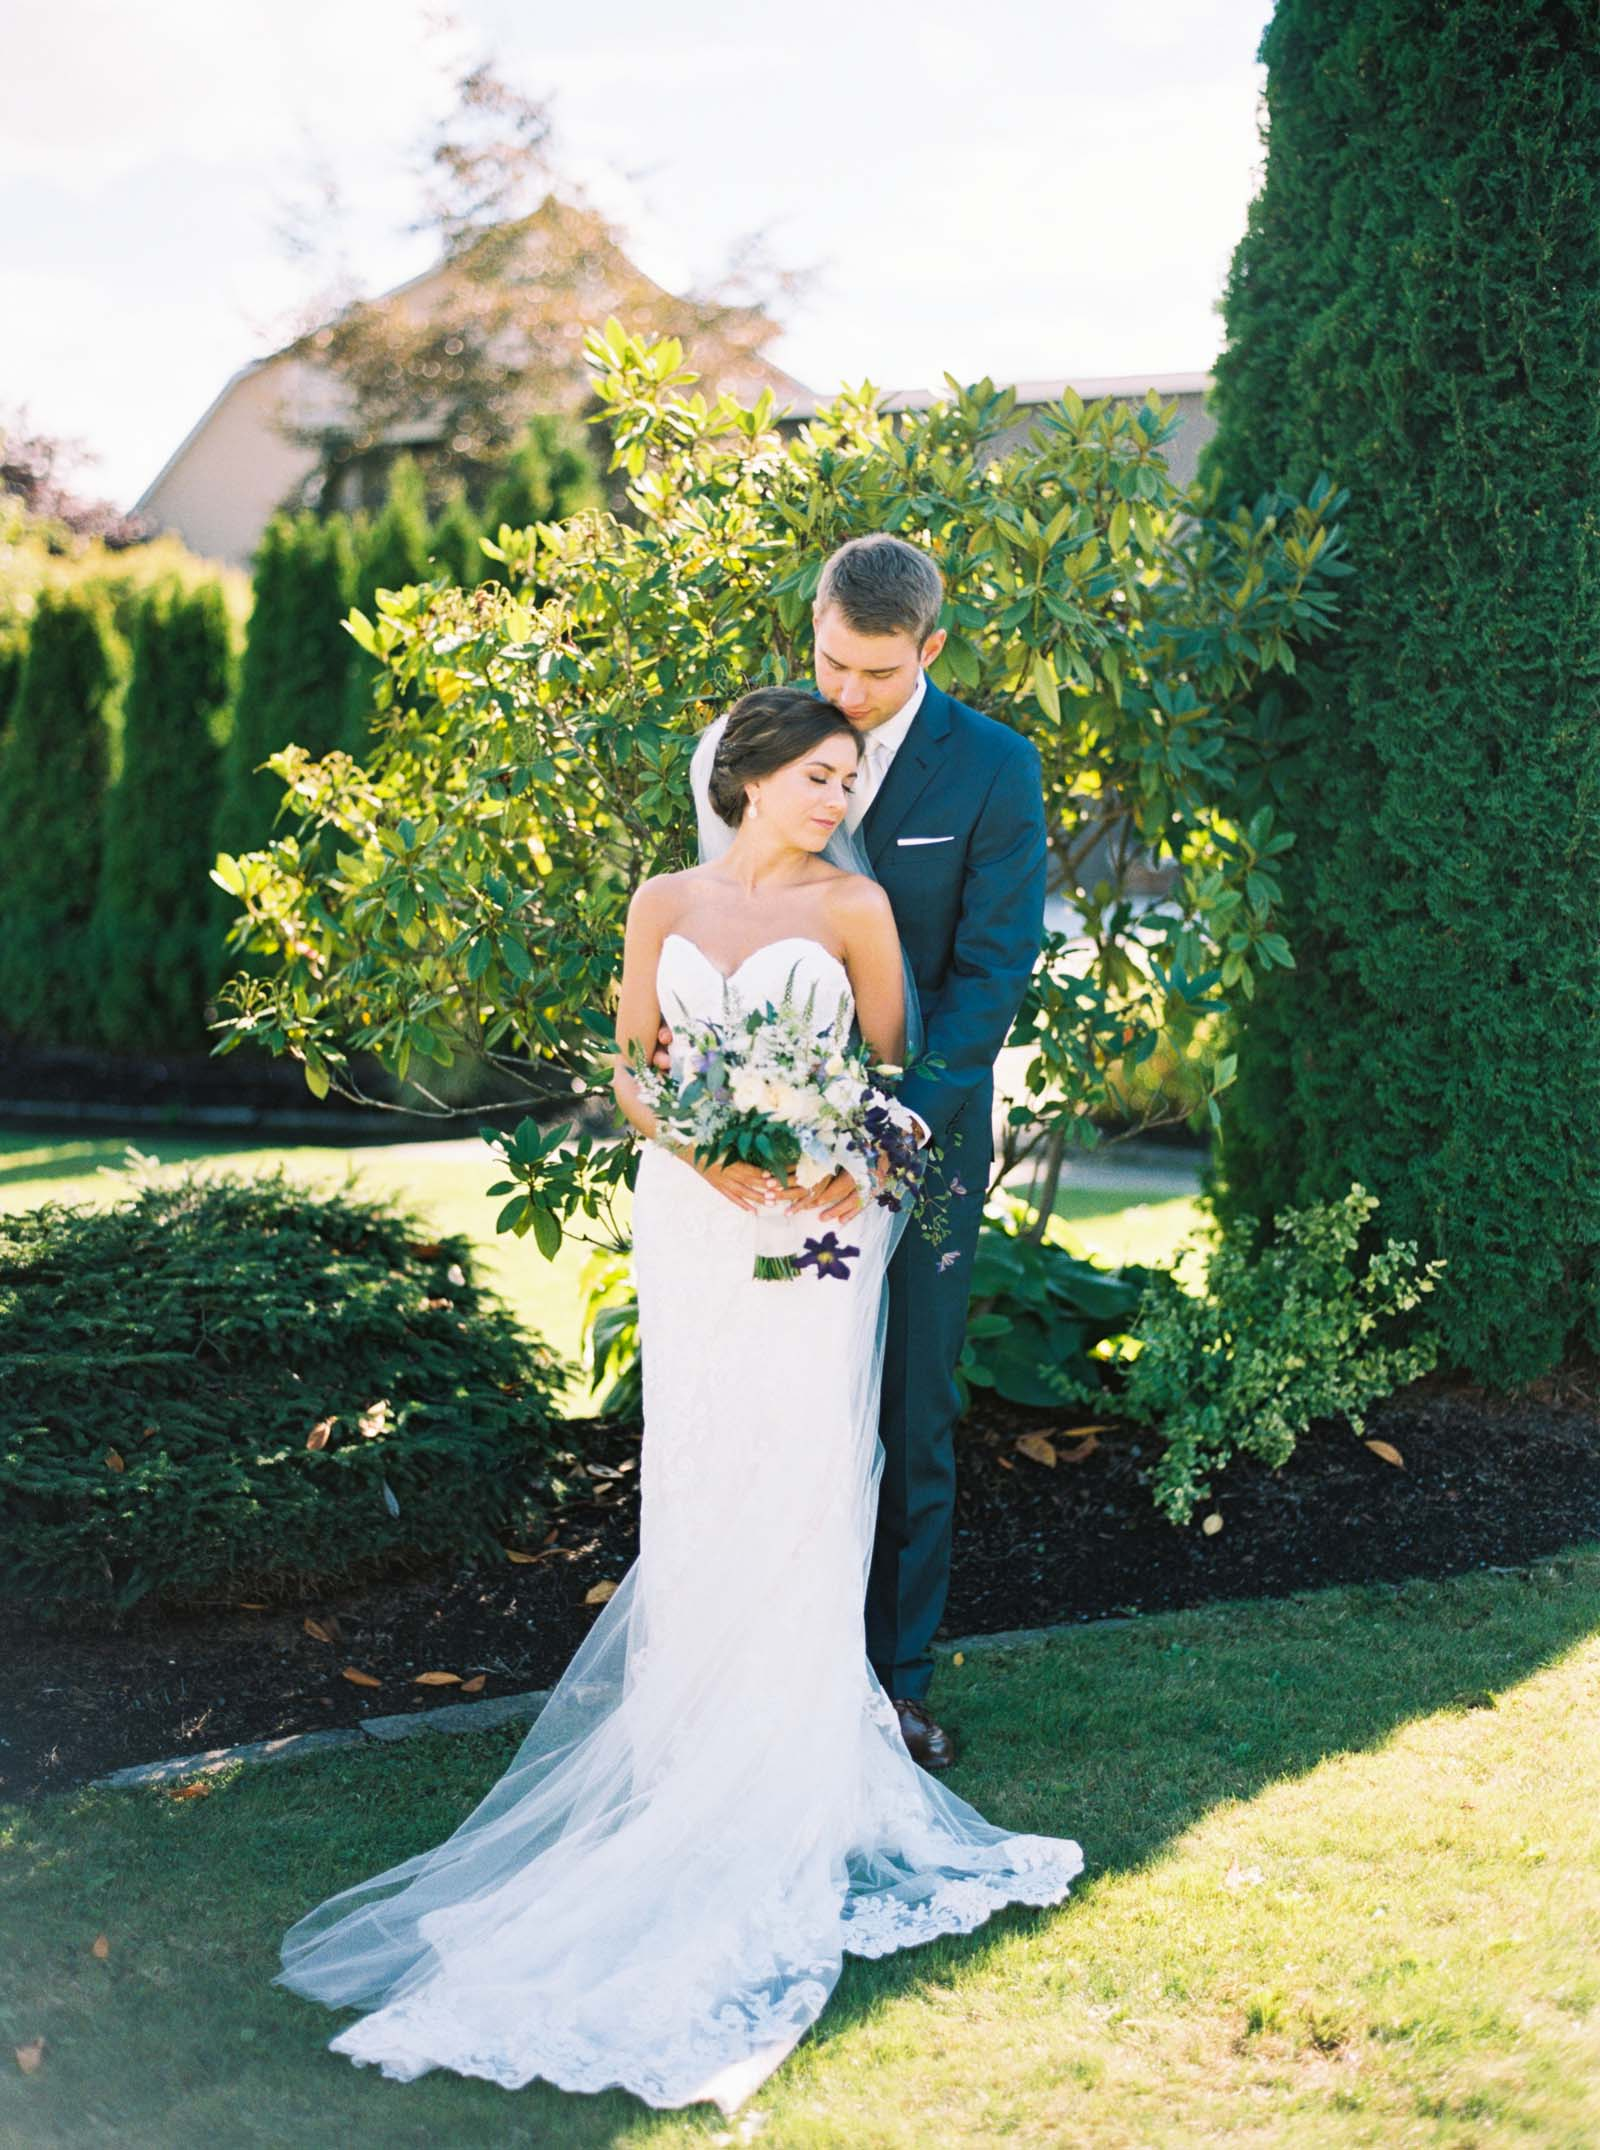 Romantic Bride and Groom portraits at Lord Hill Farms by Seattle Wedding Photographer Anna Peters